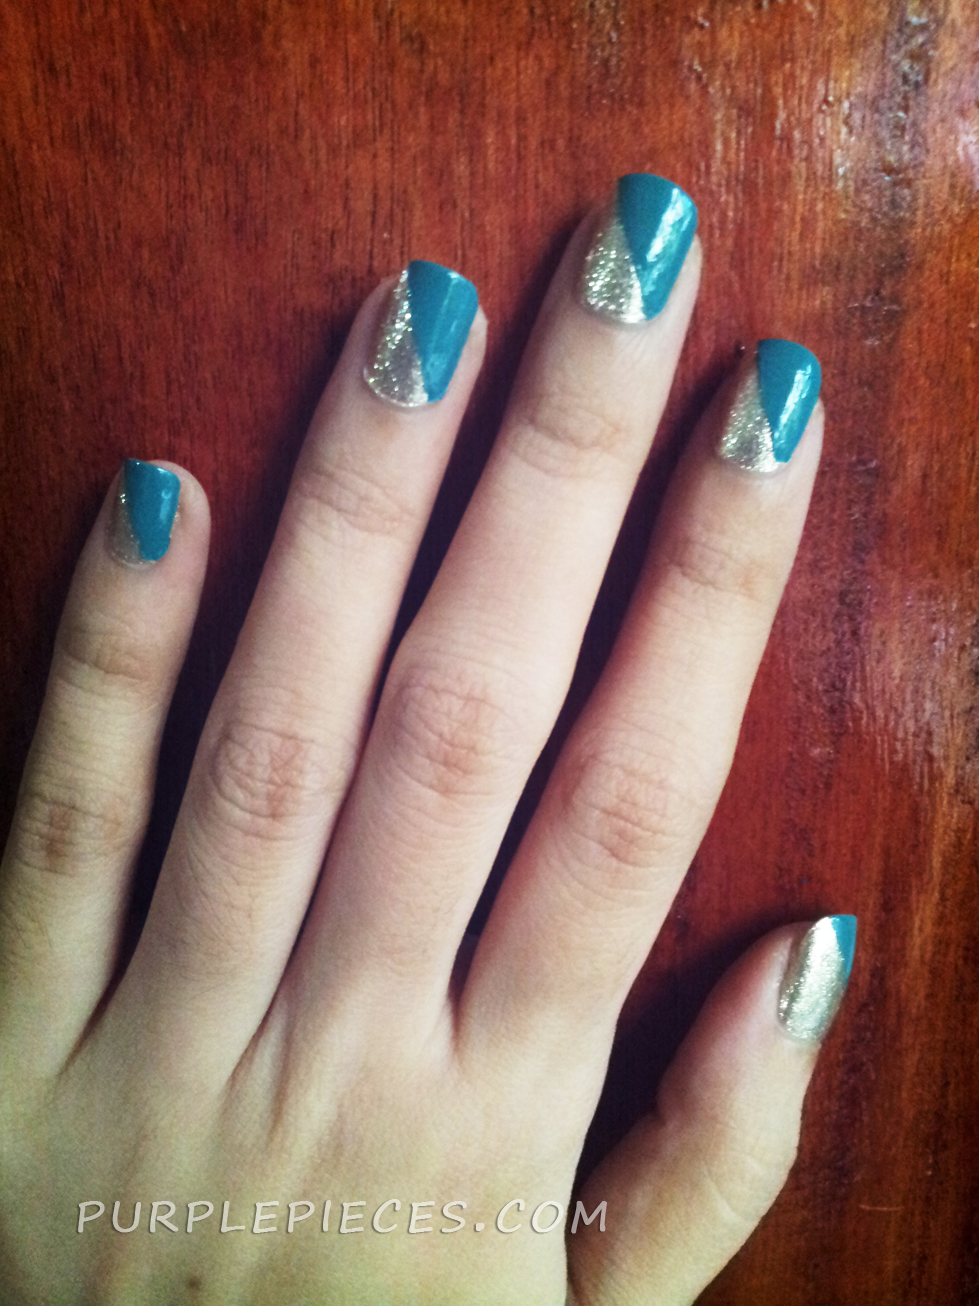 Simple Nail Art Using Scotch Tape